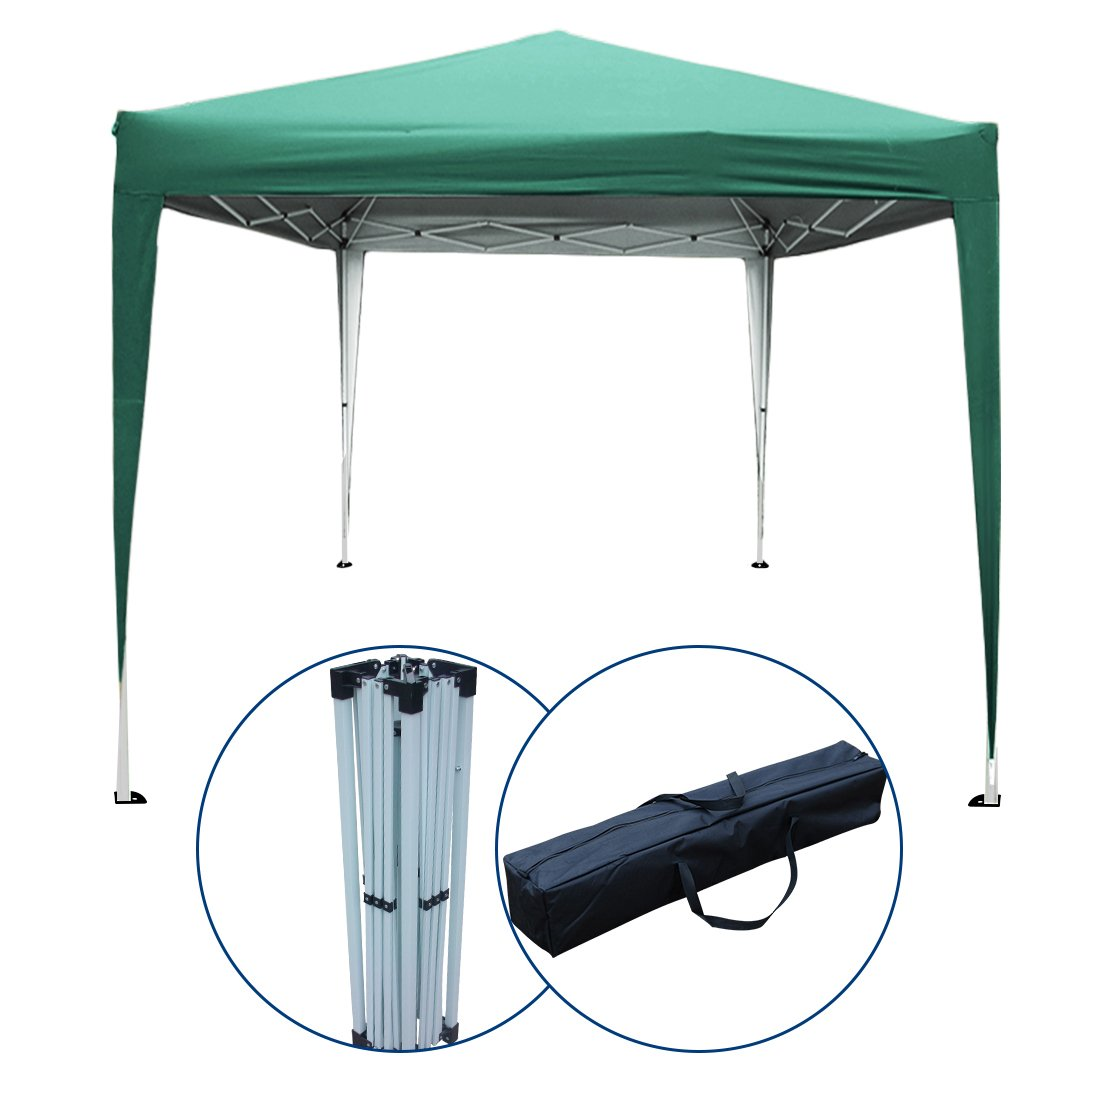 PeakTop 10 x10 Feet EZ Pop Up Canopy Tent Party Tent Gazebo Instant Beach Sun Shade With Carry Bag 100% Waterproof-5 Colors (Green)